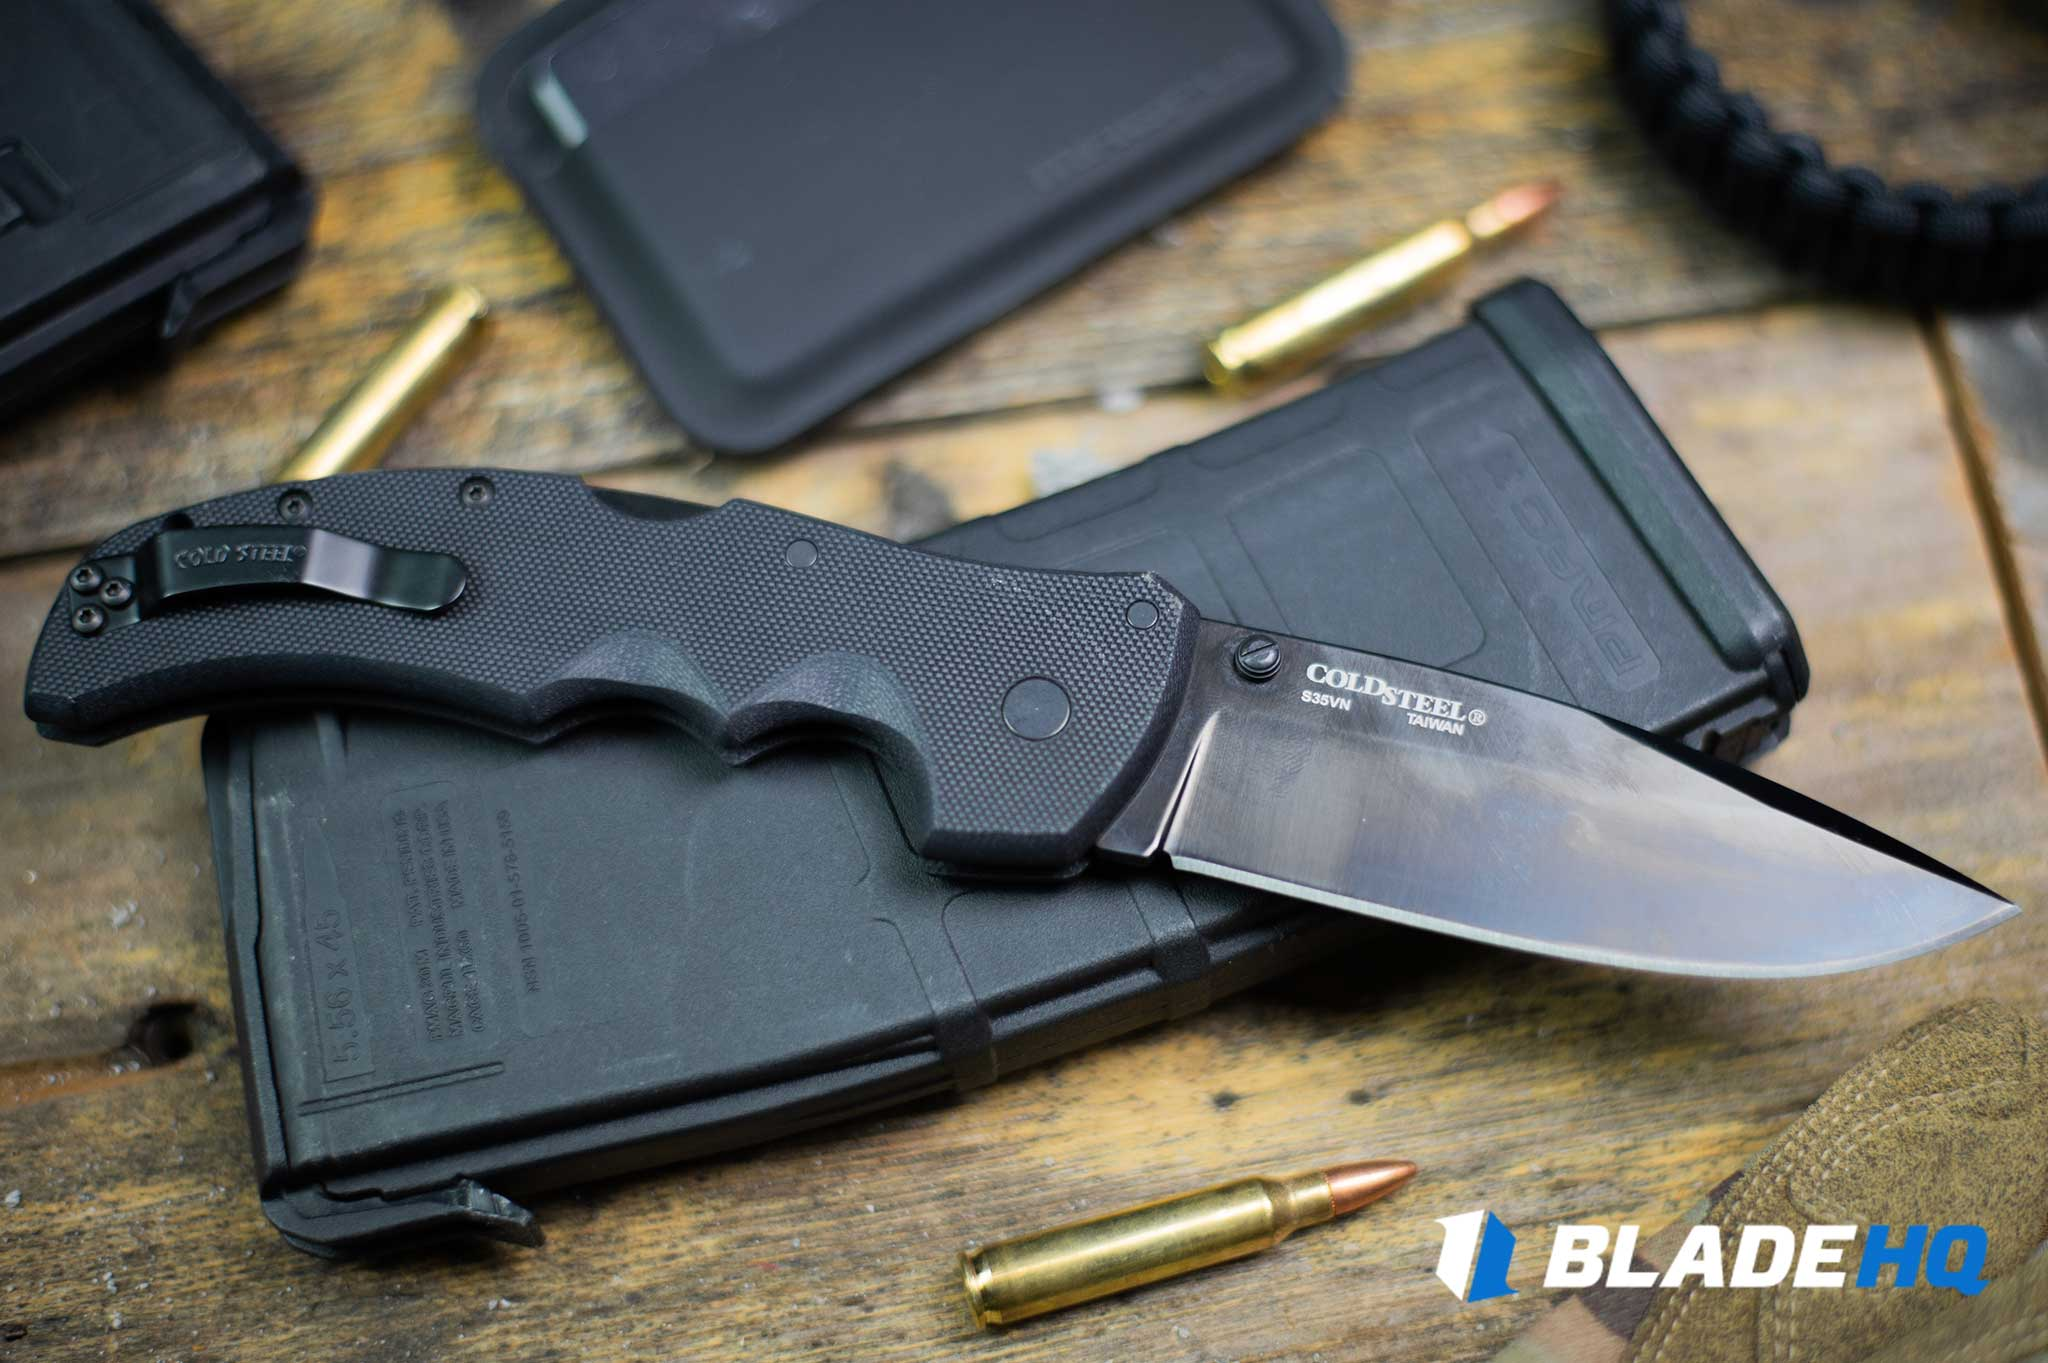 Cold Steel Recon 1 Knife Life Score